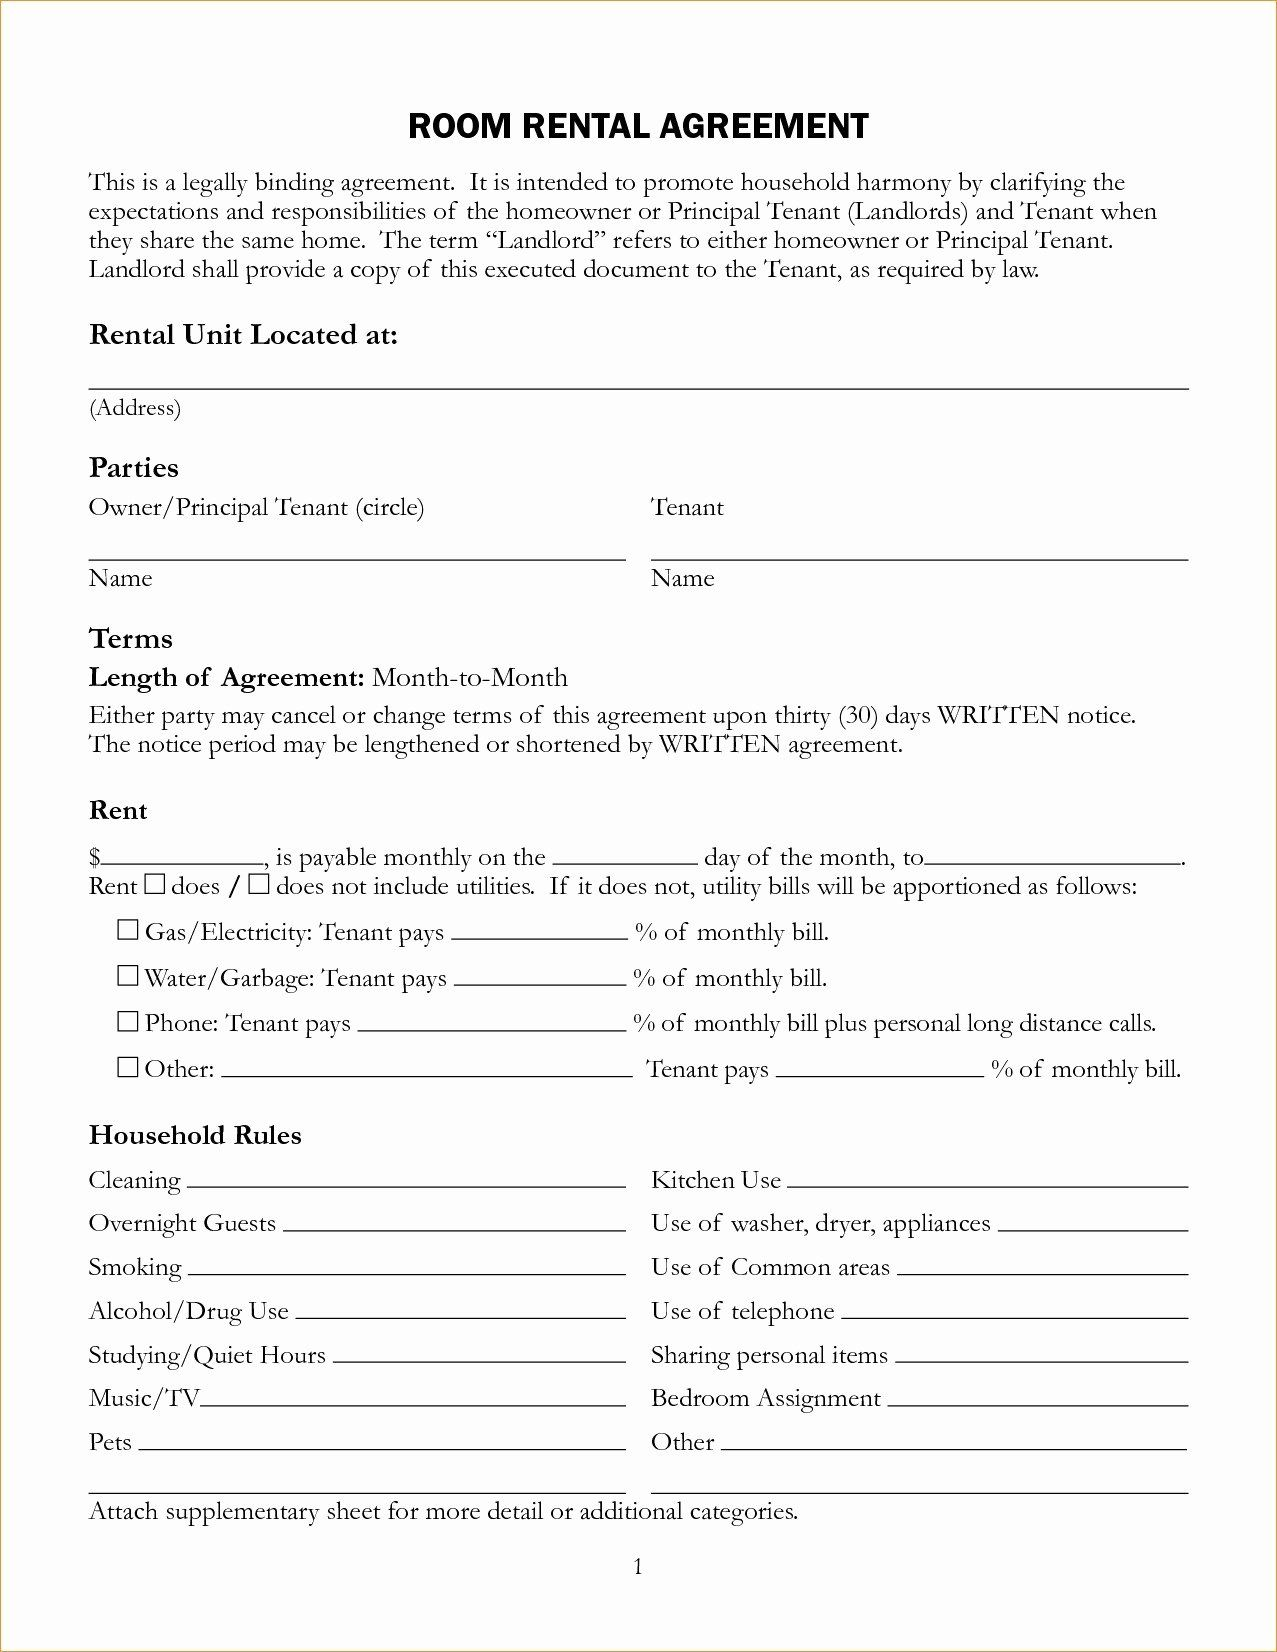 Transfer Of Business Ownership Agreement Template Lovely Change